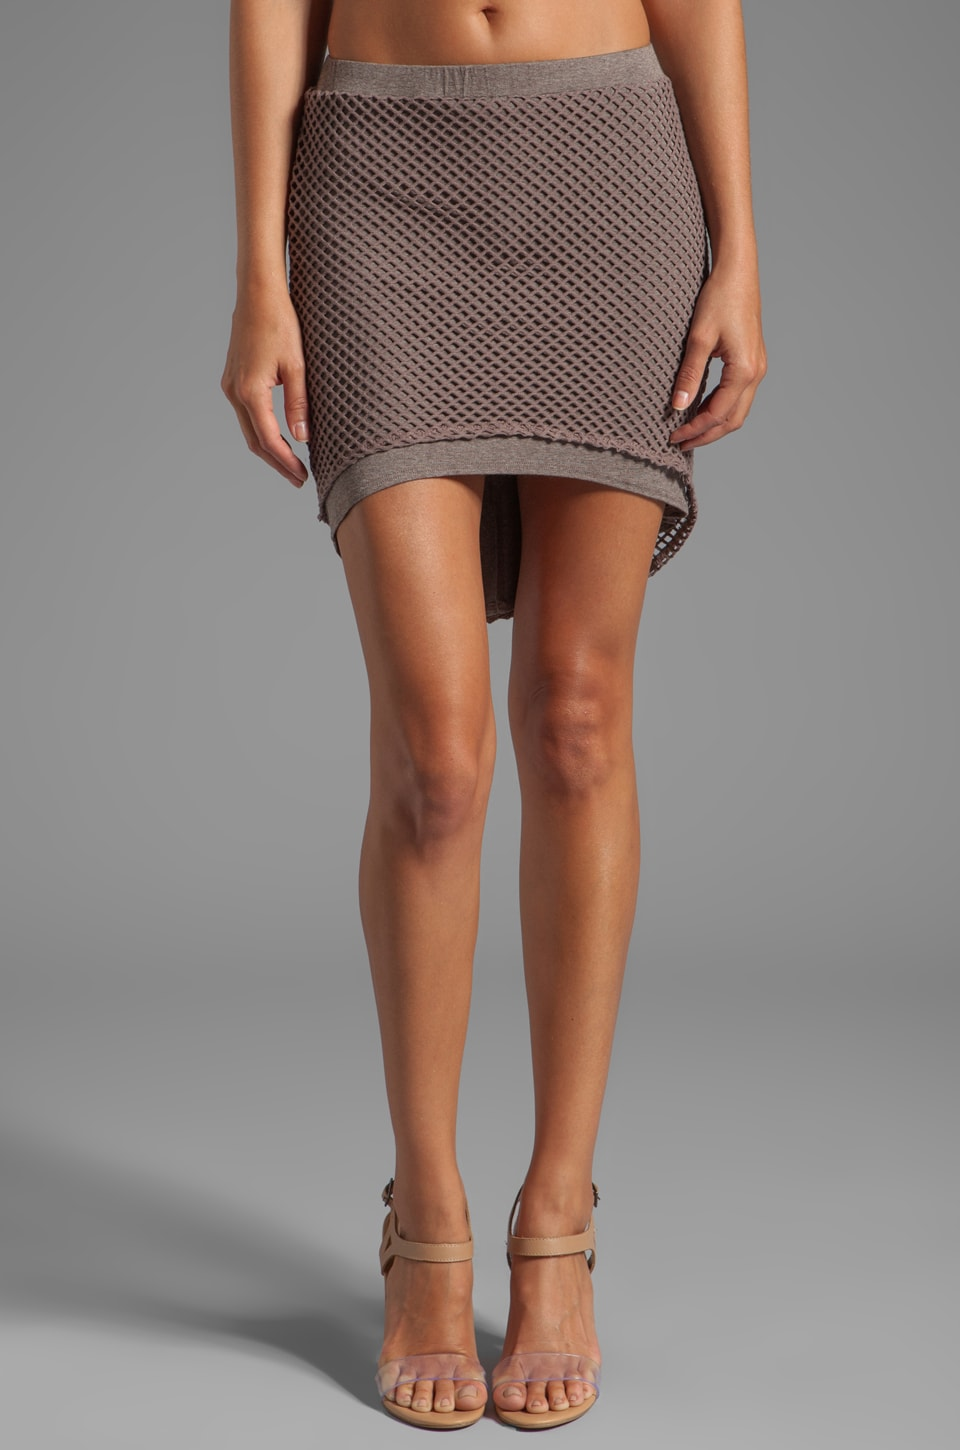 Riller & Fount Lucas Fishnet Skirt in Grantham